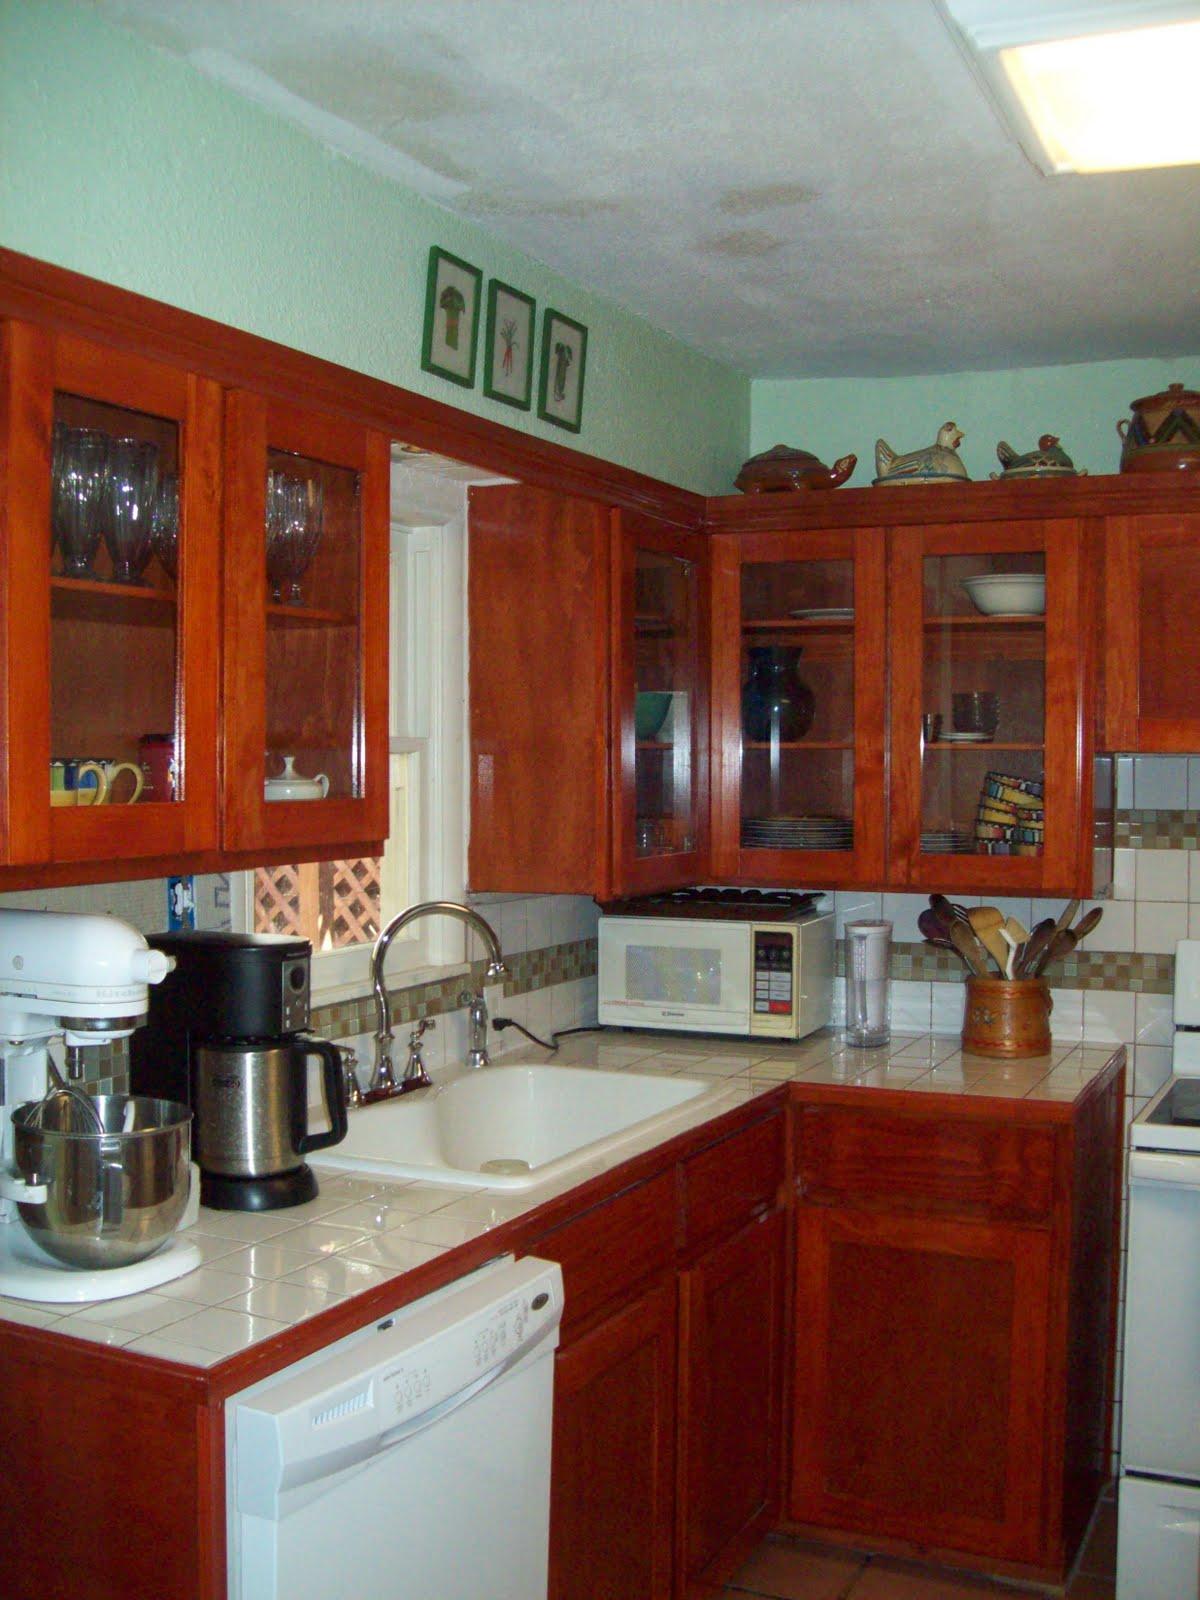 kitchen cabinets low price low price kitchen cabinets image to u 6201